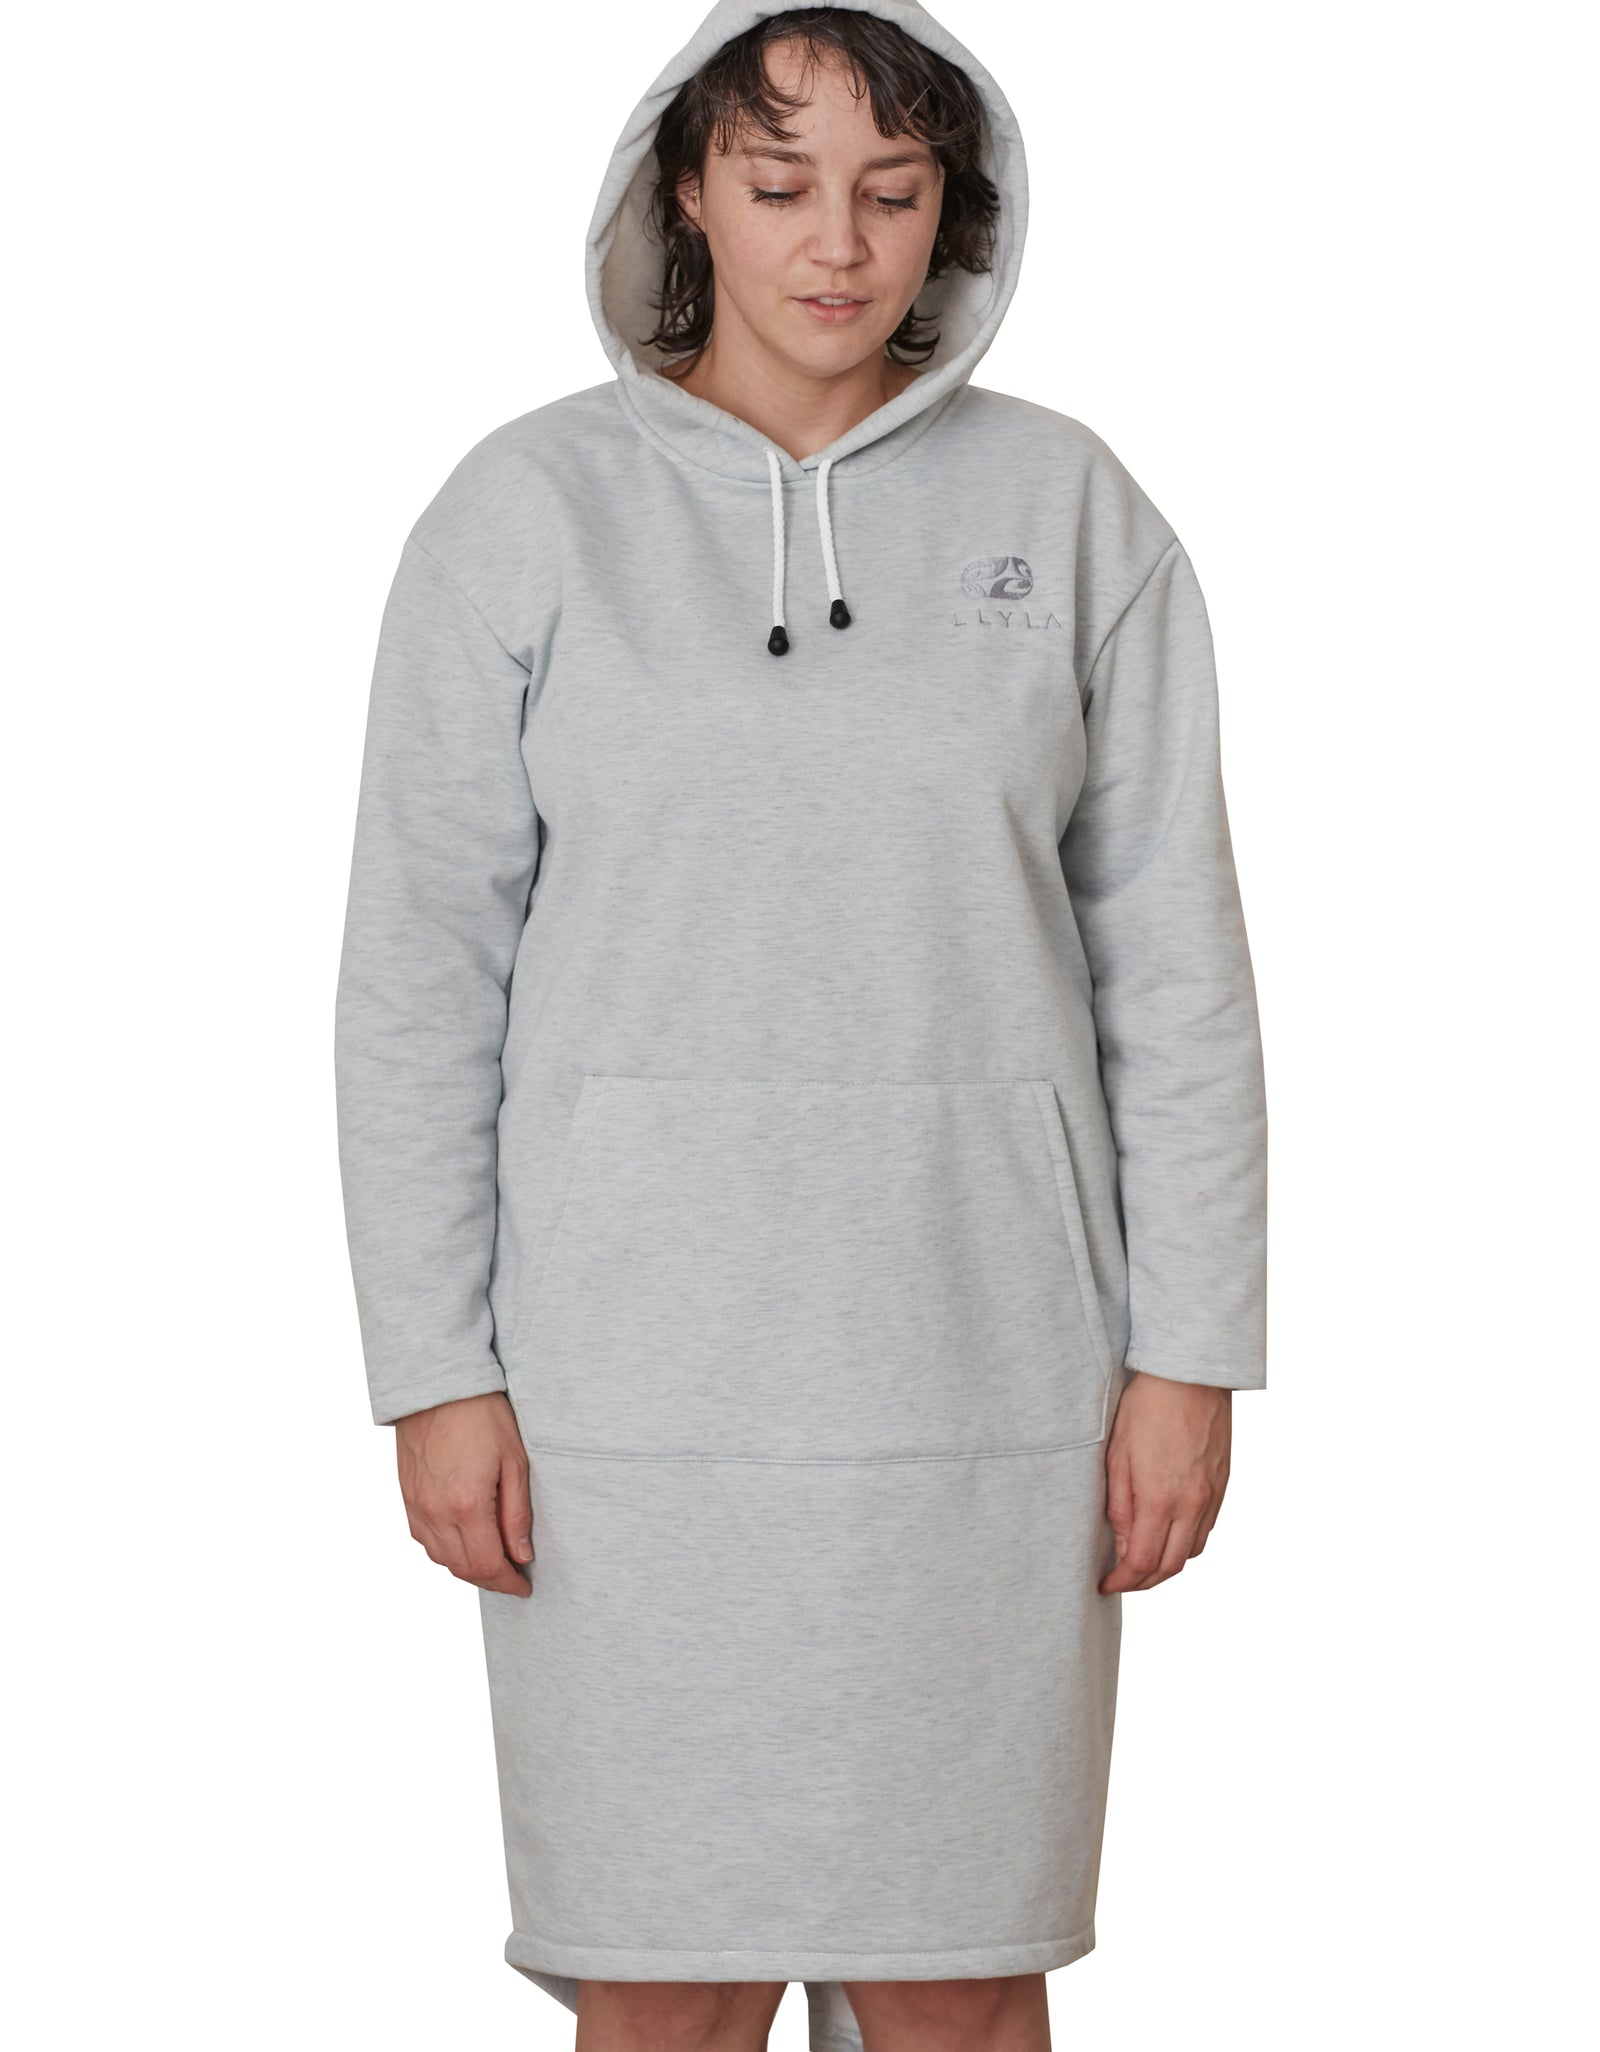 LLYLA Sweatshirt/Hoodie Front Pocket Dress